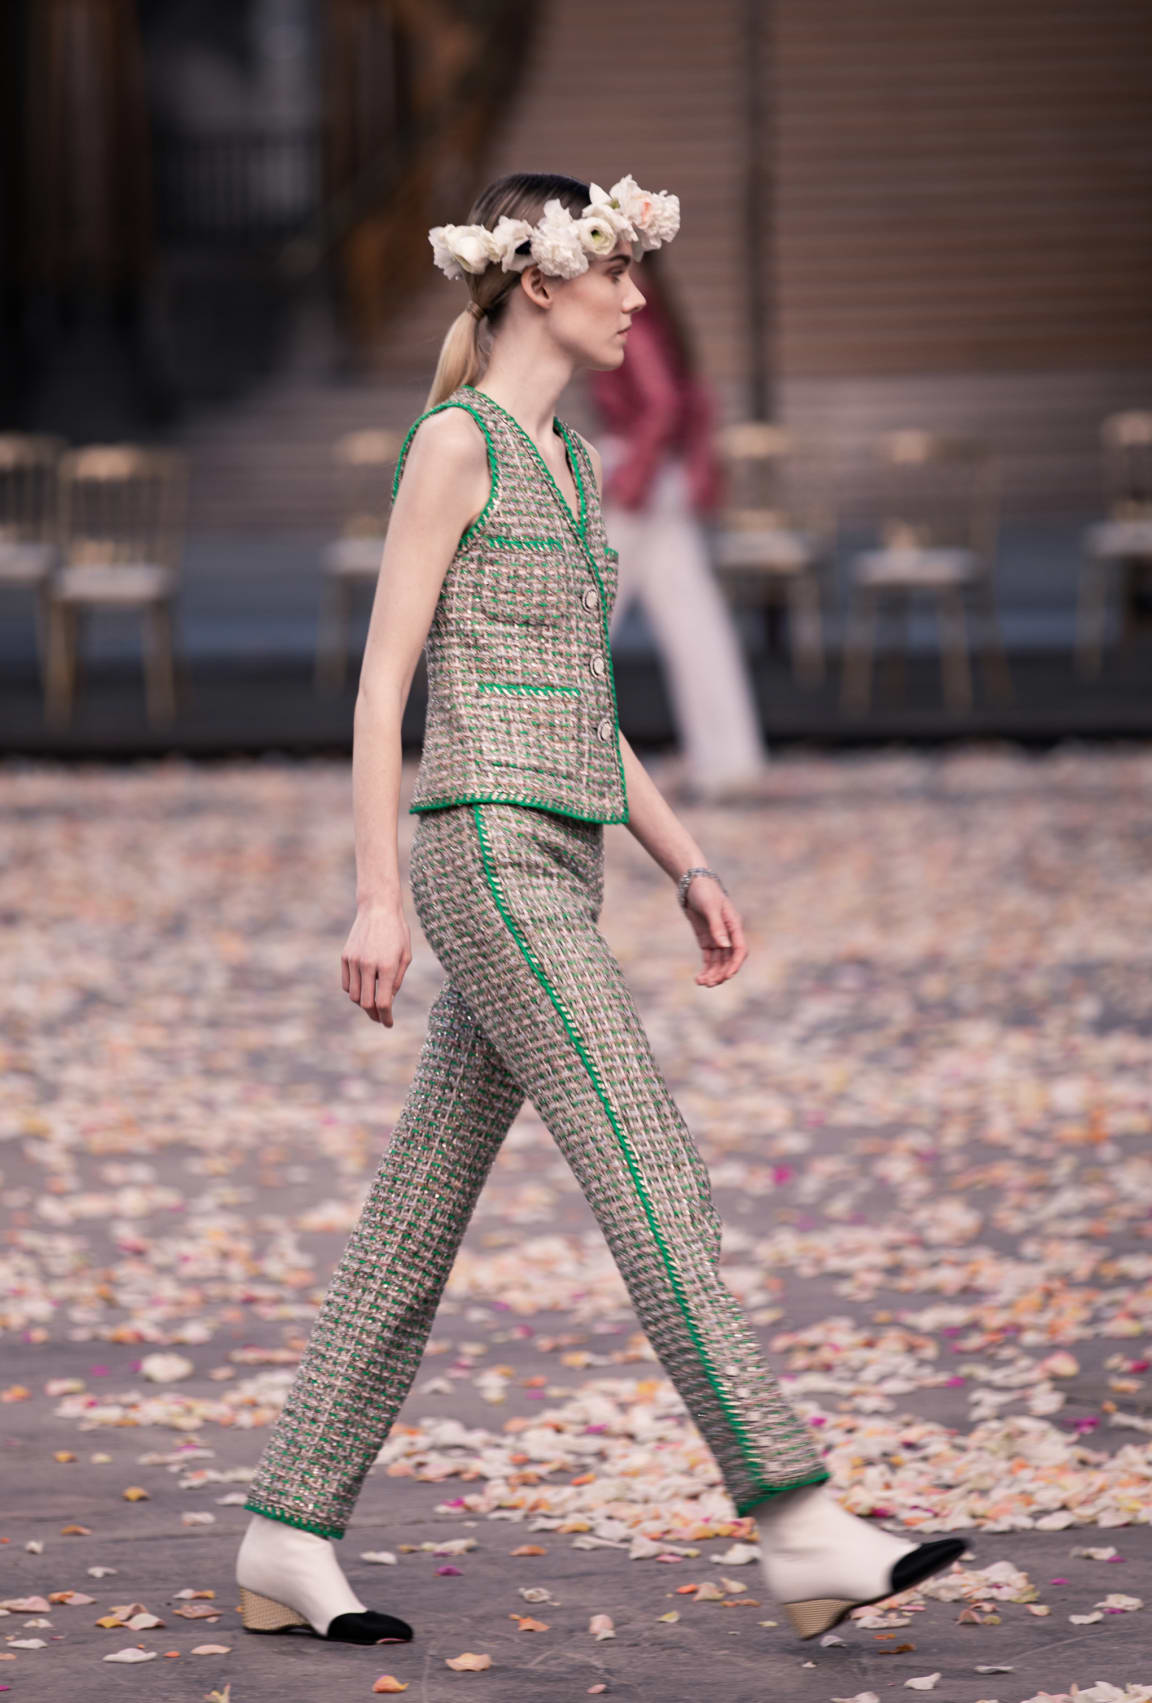 View 4 - Look 8 - Spring-Summer 2021 Haute Couture - see full sized version